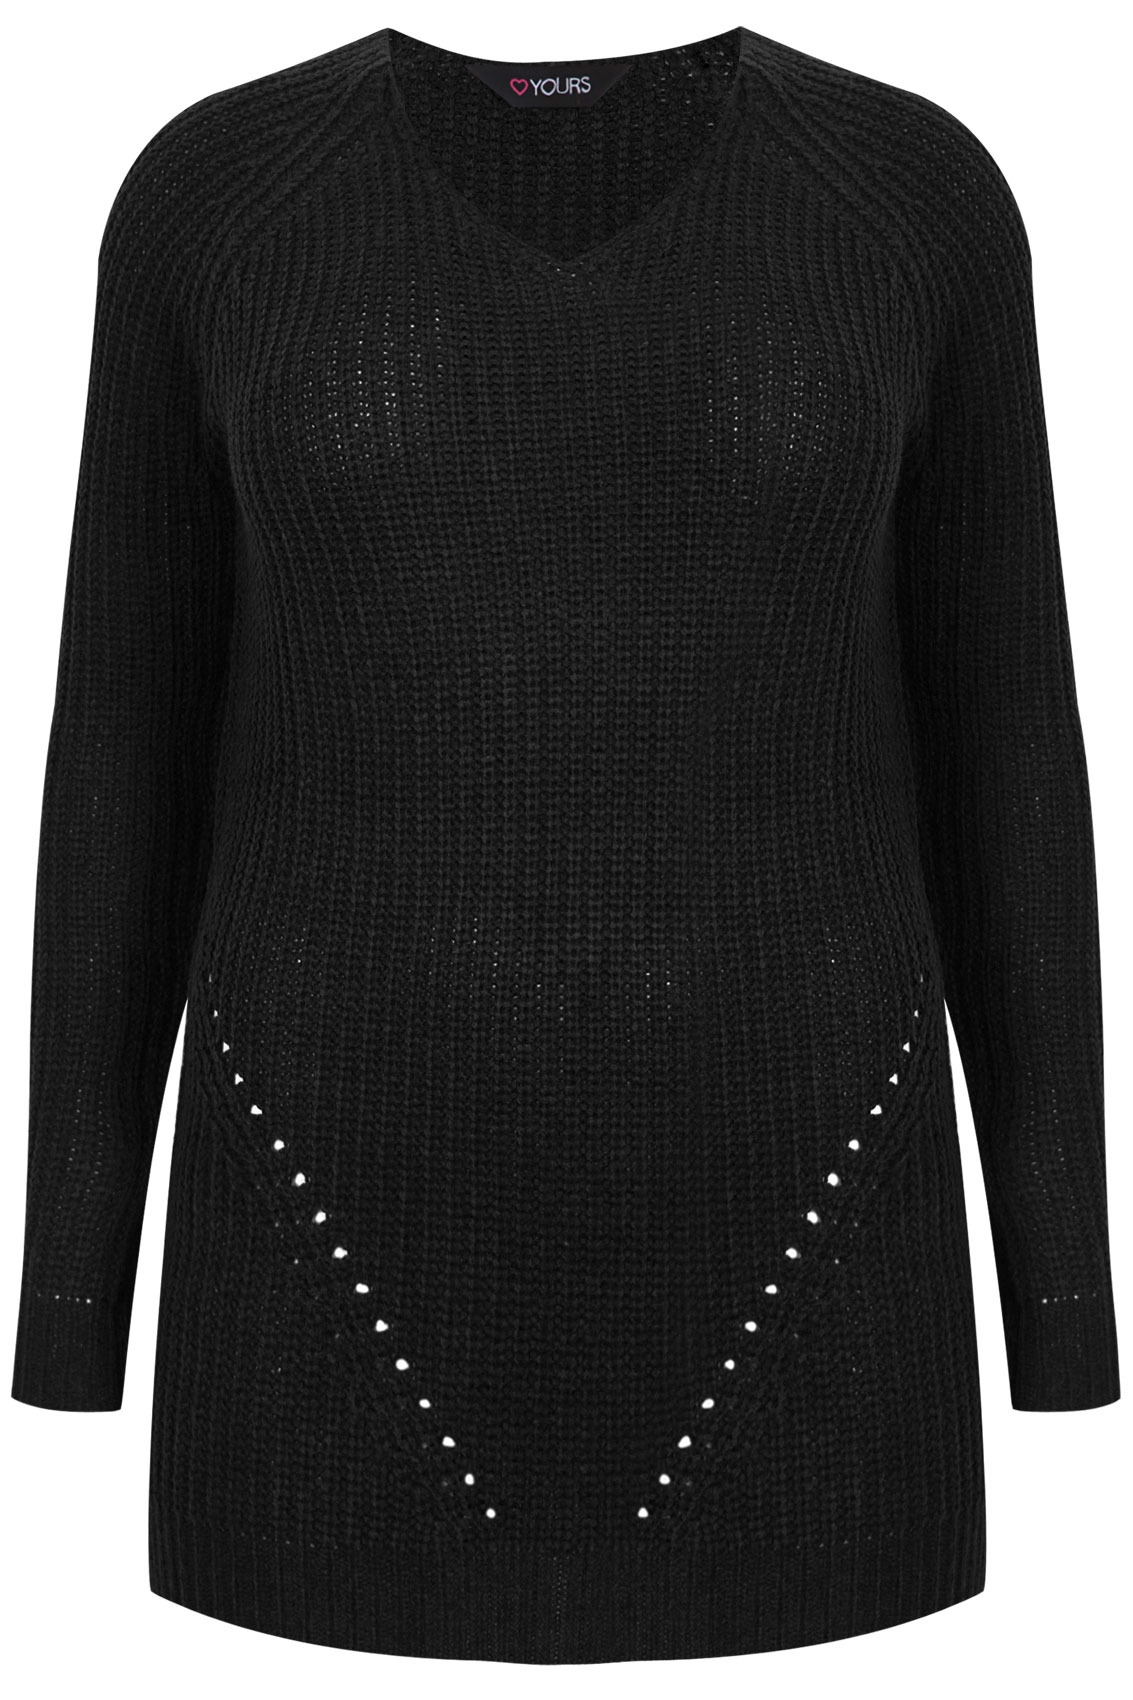 River Island v-neck jumper in black contrast. £ Miss Selfridge lattice back ribbed top in white. £ Micha Lounge luxe high neck tunic with exaggerated side split in mohair blend. £ Mango striped high neck long sleeve top. £ ASOS DESIGN Bralet In Rib Knit. £